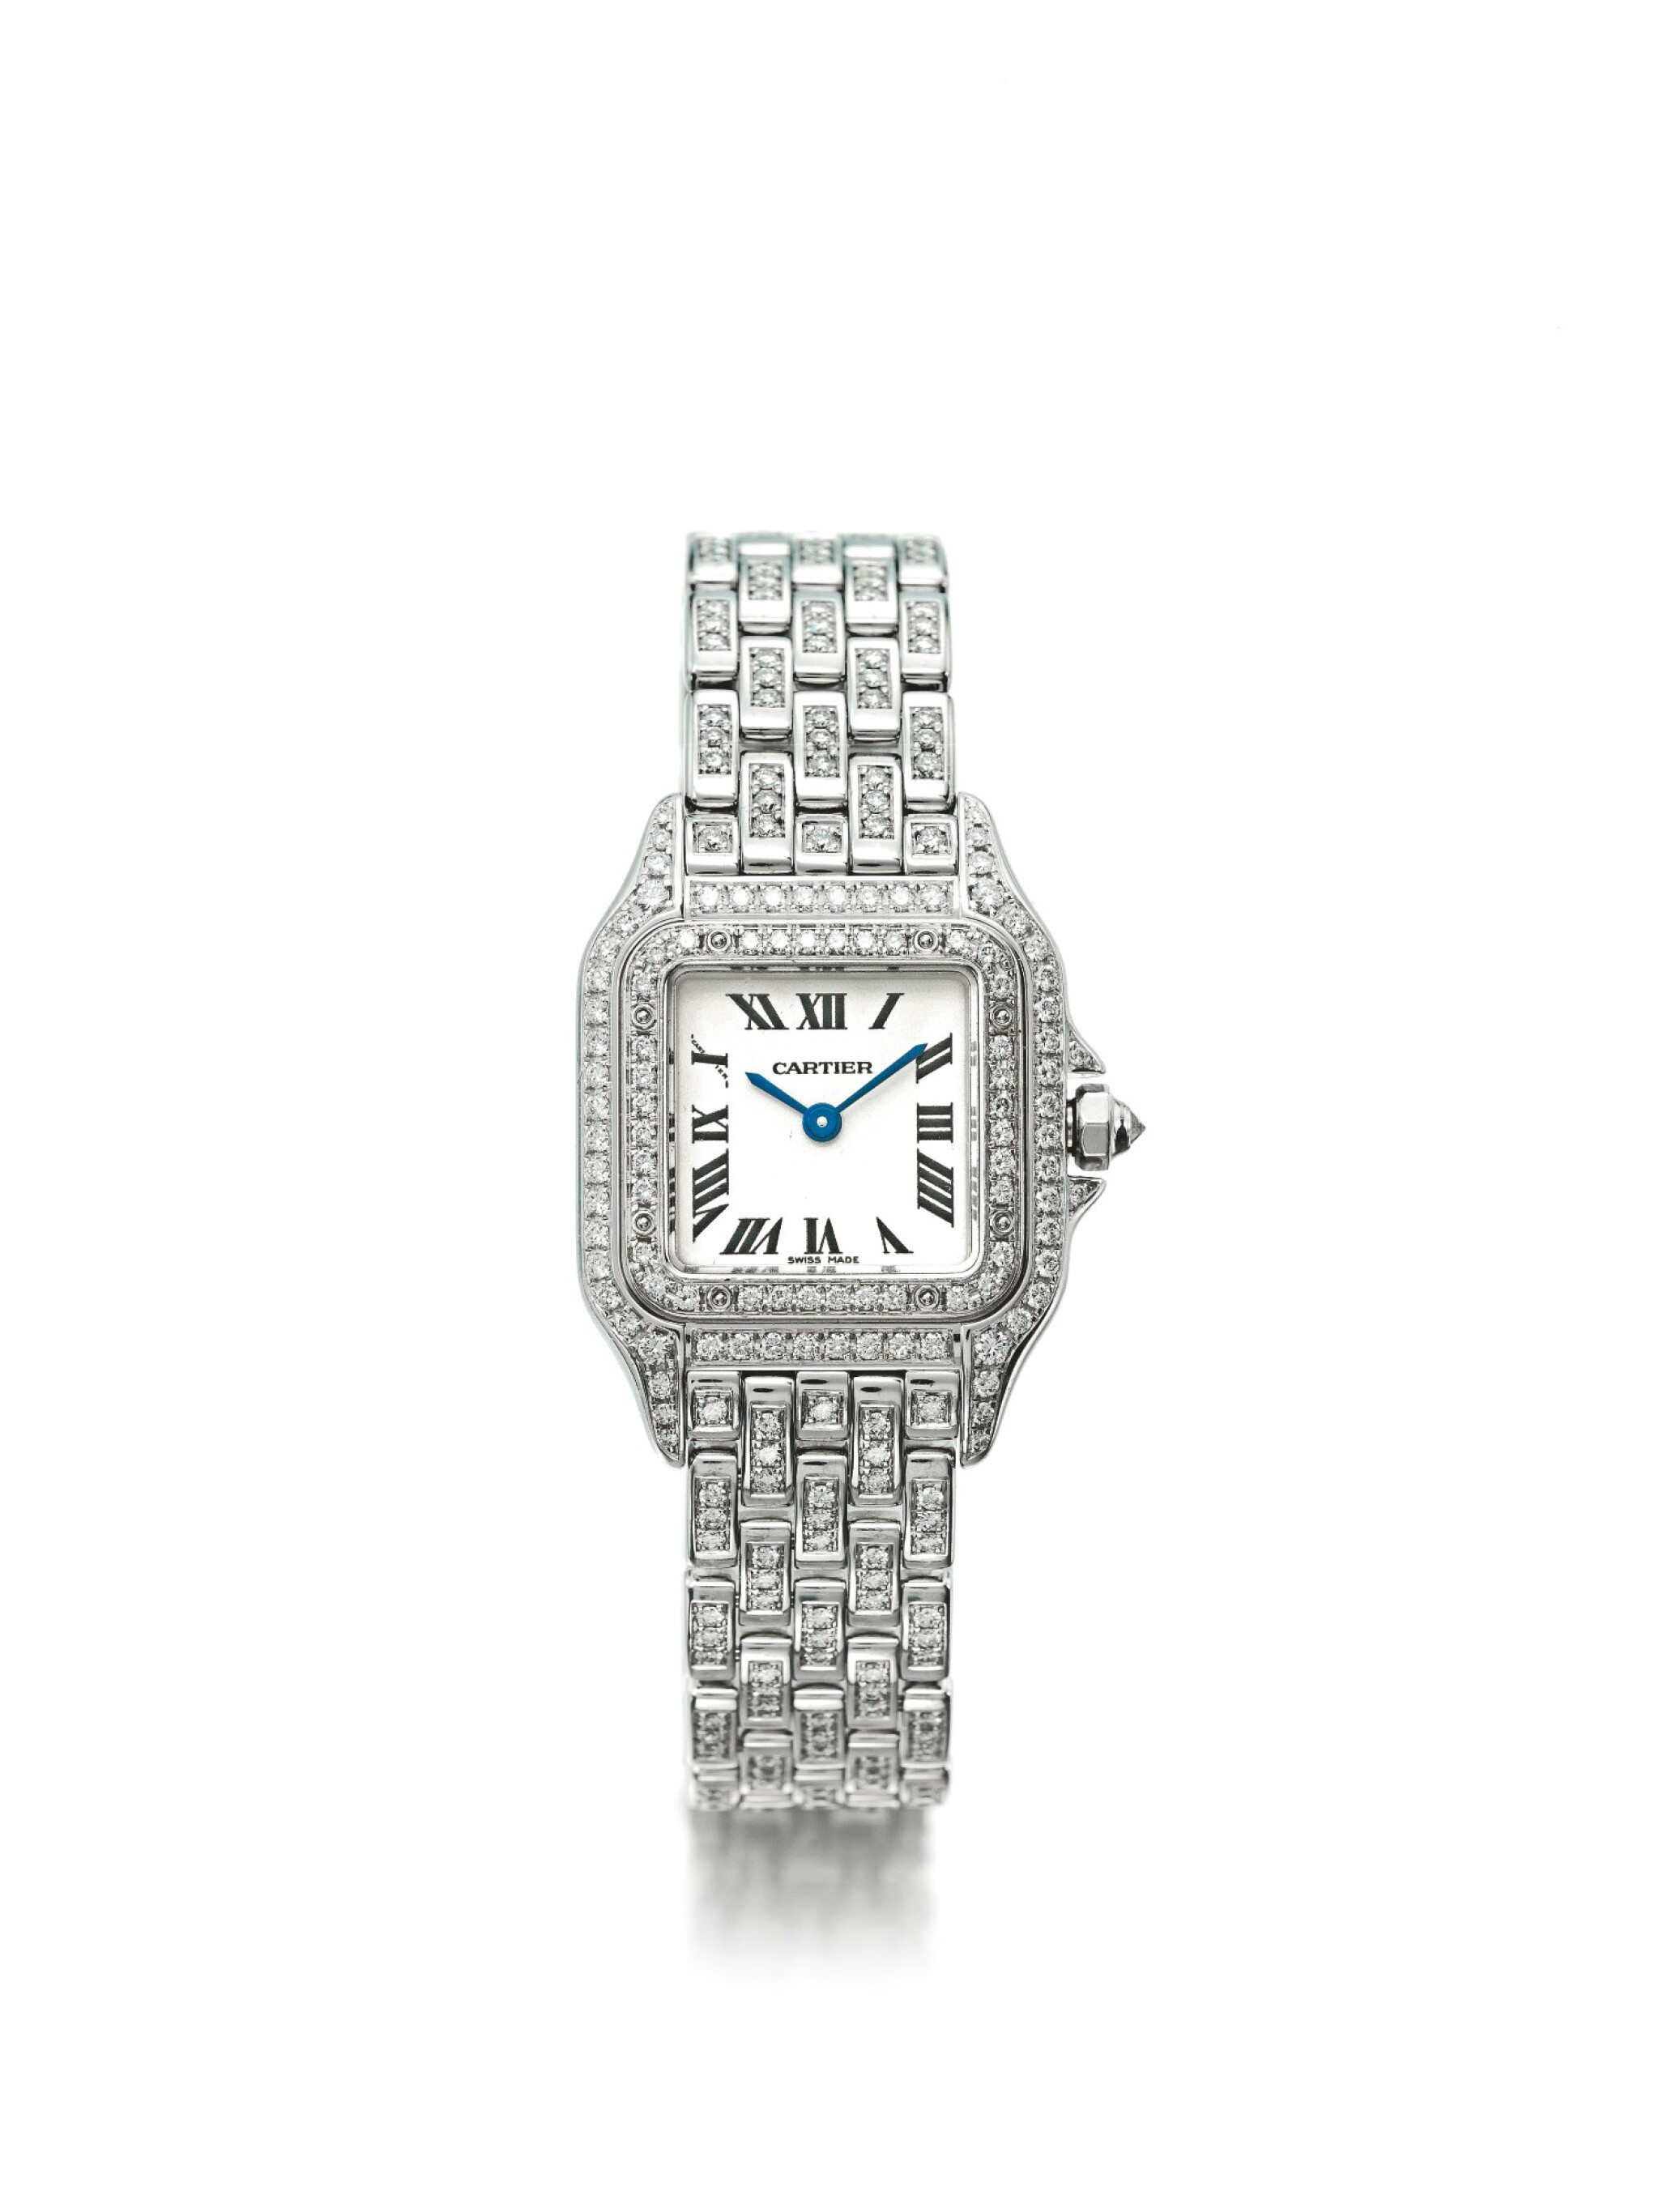 View 1 of Lot 35. CARTIER | REF 1660 PANTHÉRE, A LADY'S WHITE GOLD AND DIAMOND SET WRISTWATCH WITH BRACELET CIRCA 2010.